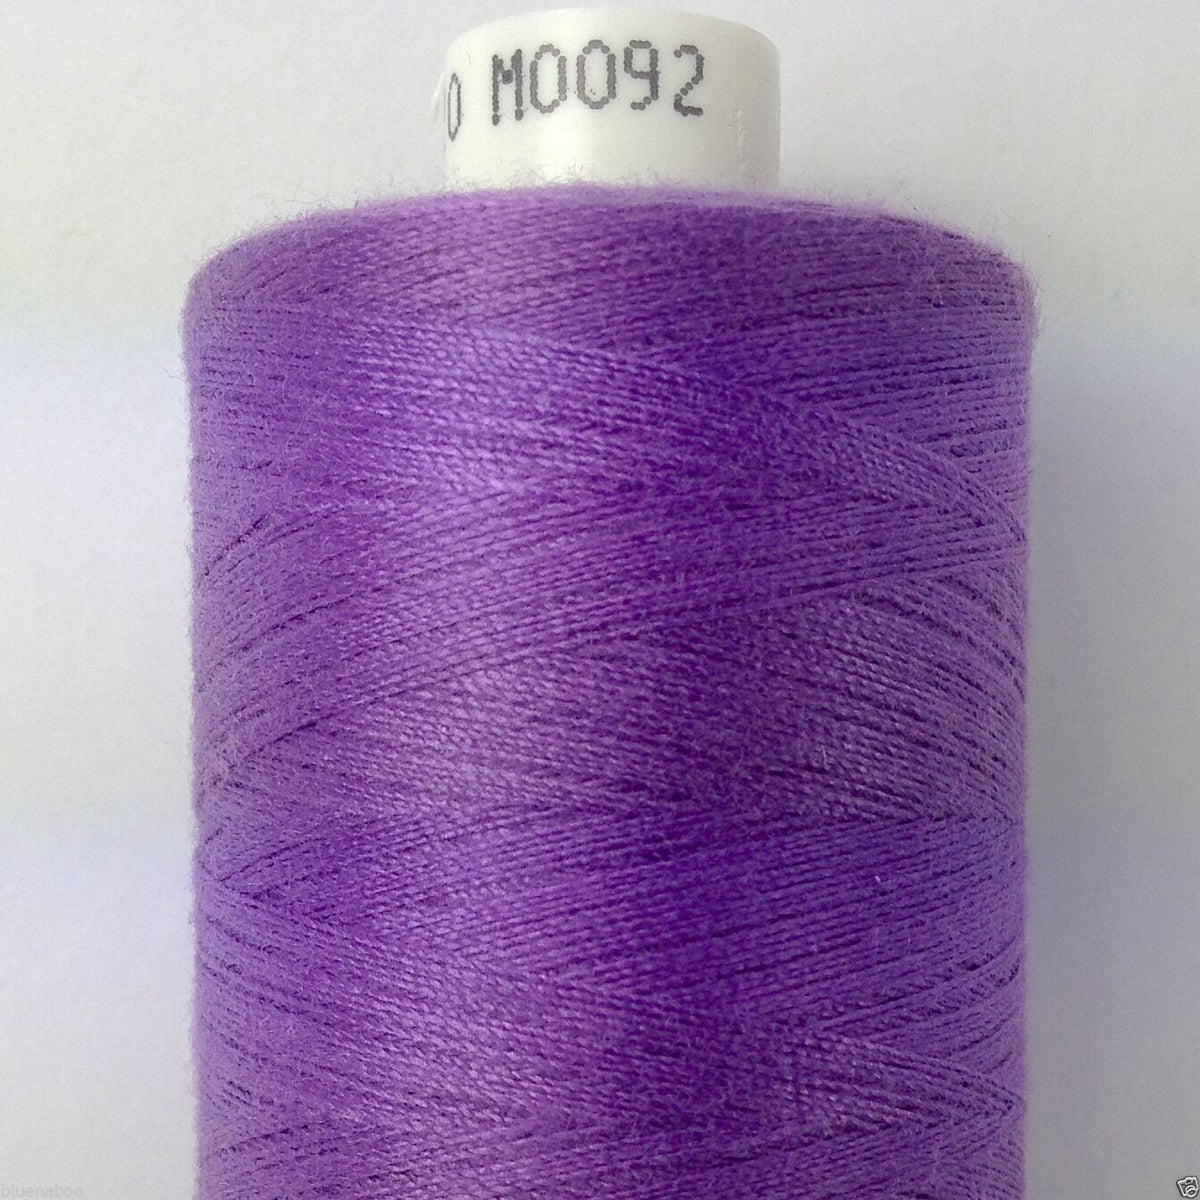 light purple no. 92